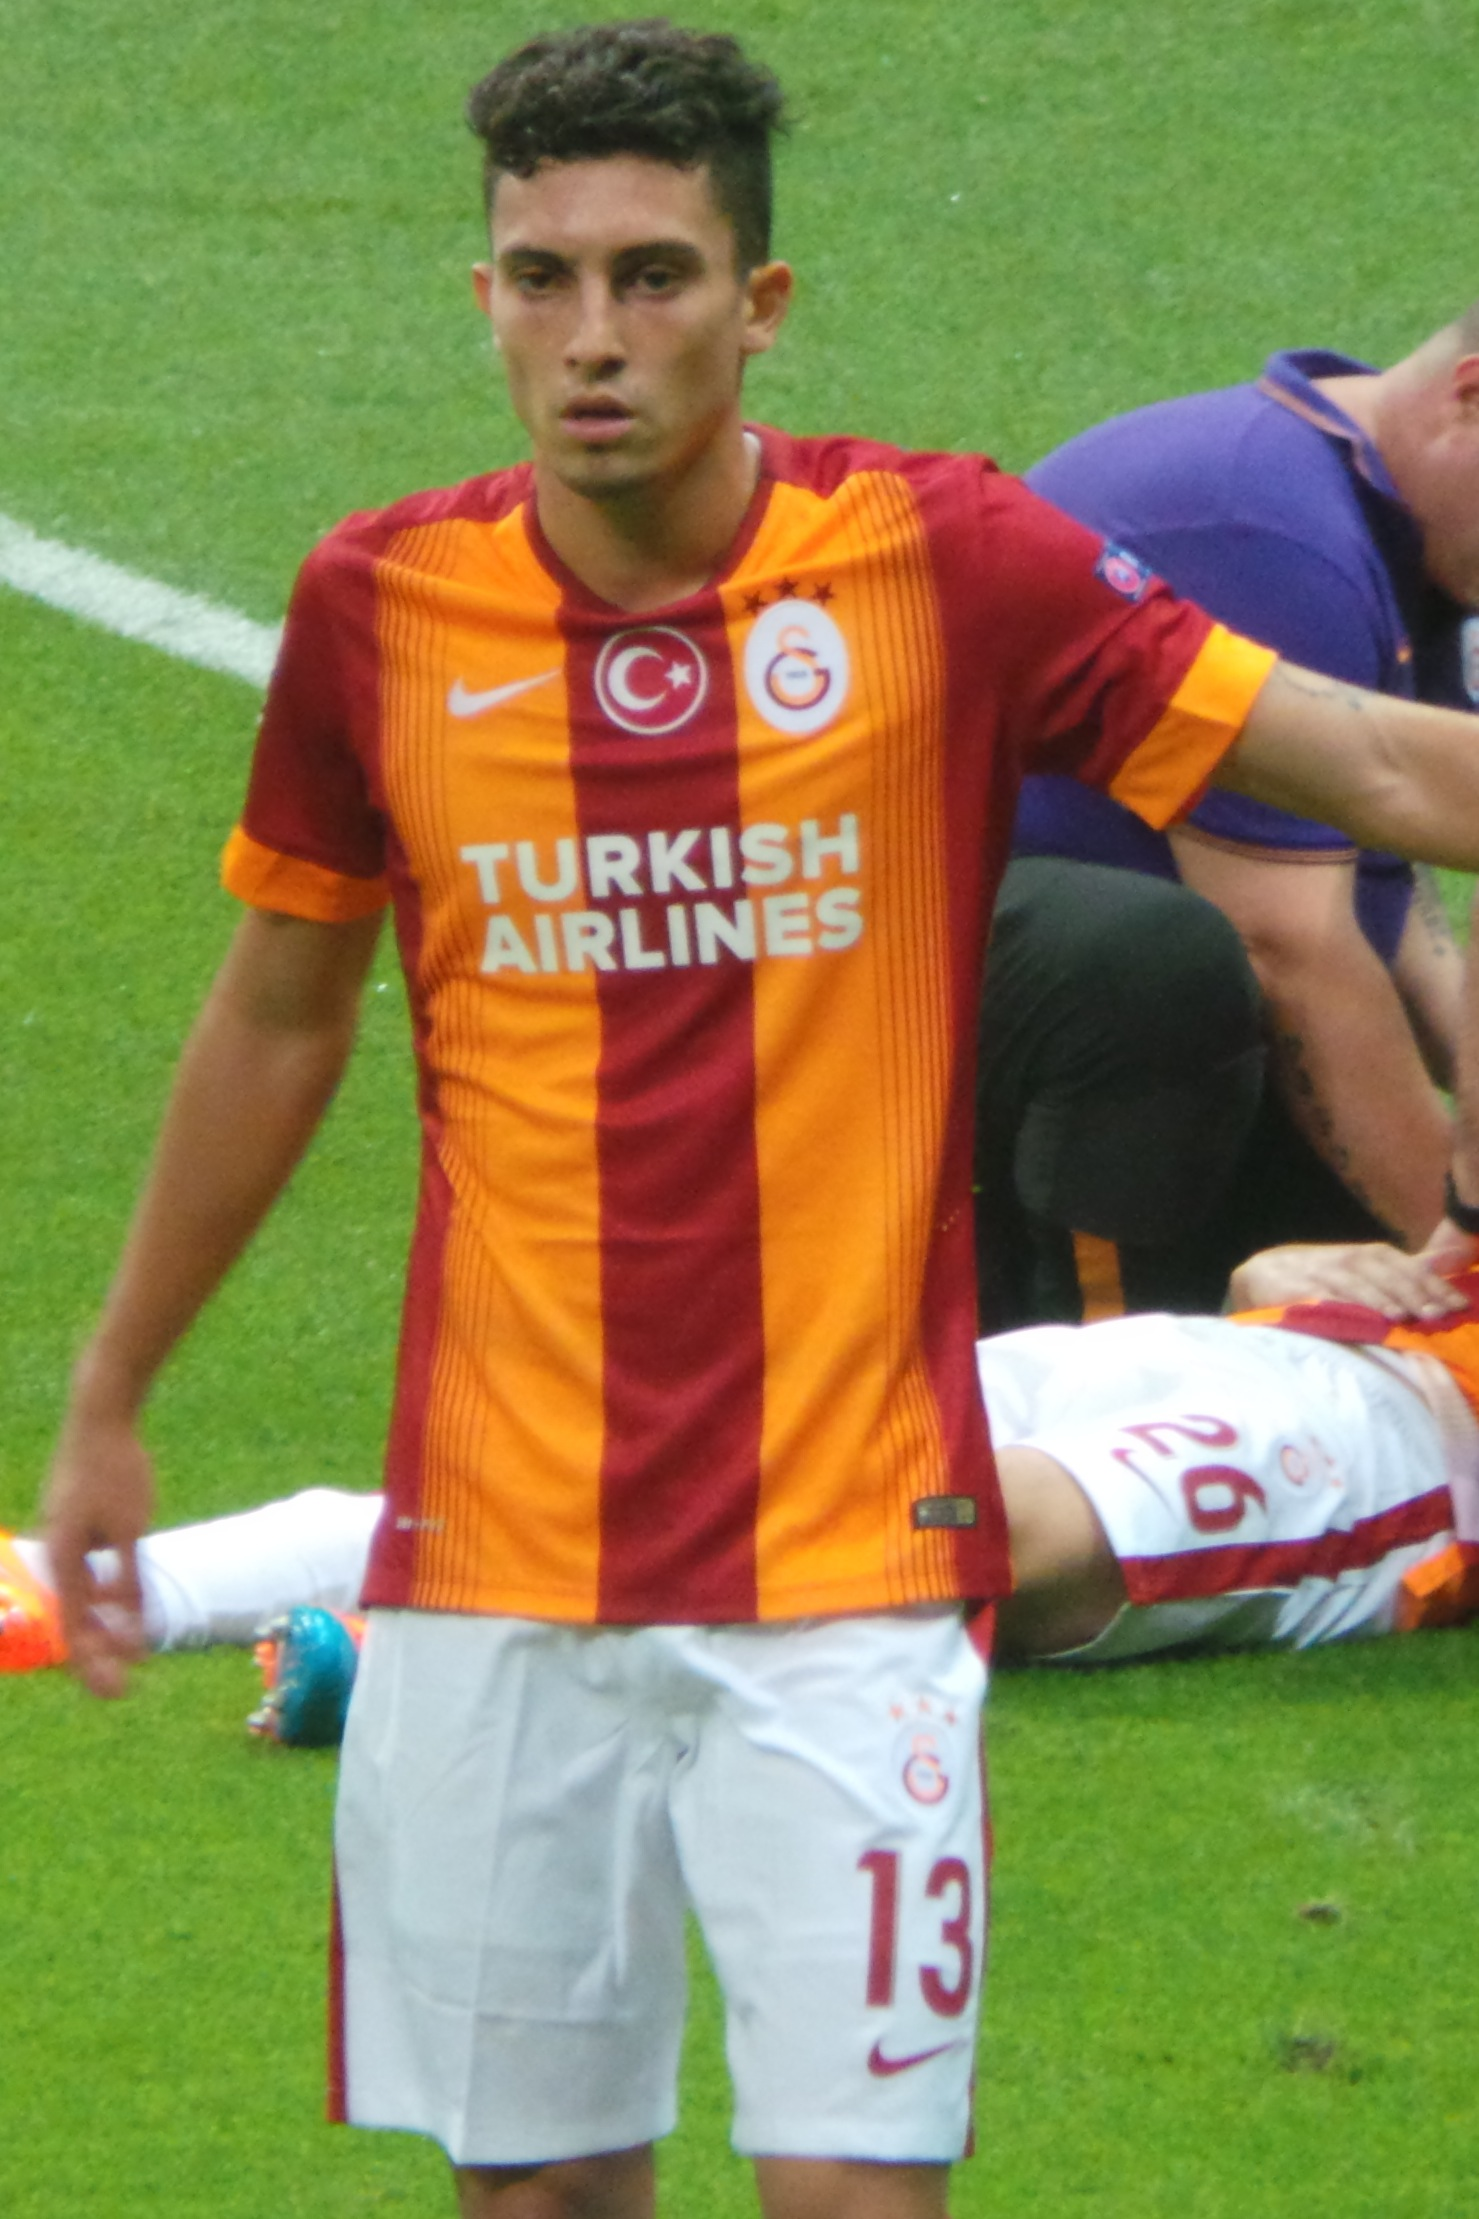 The 25-year old son of father (?) and mother(?) Alex Telles in 2018 photo. Alex Telles earned a  million dollar salary - leaving the net worth at 4 million in 2018